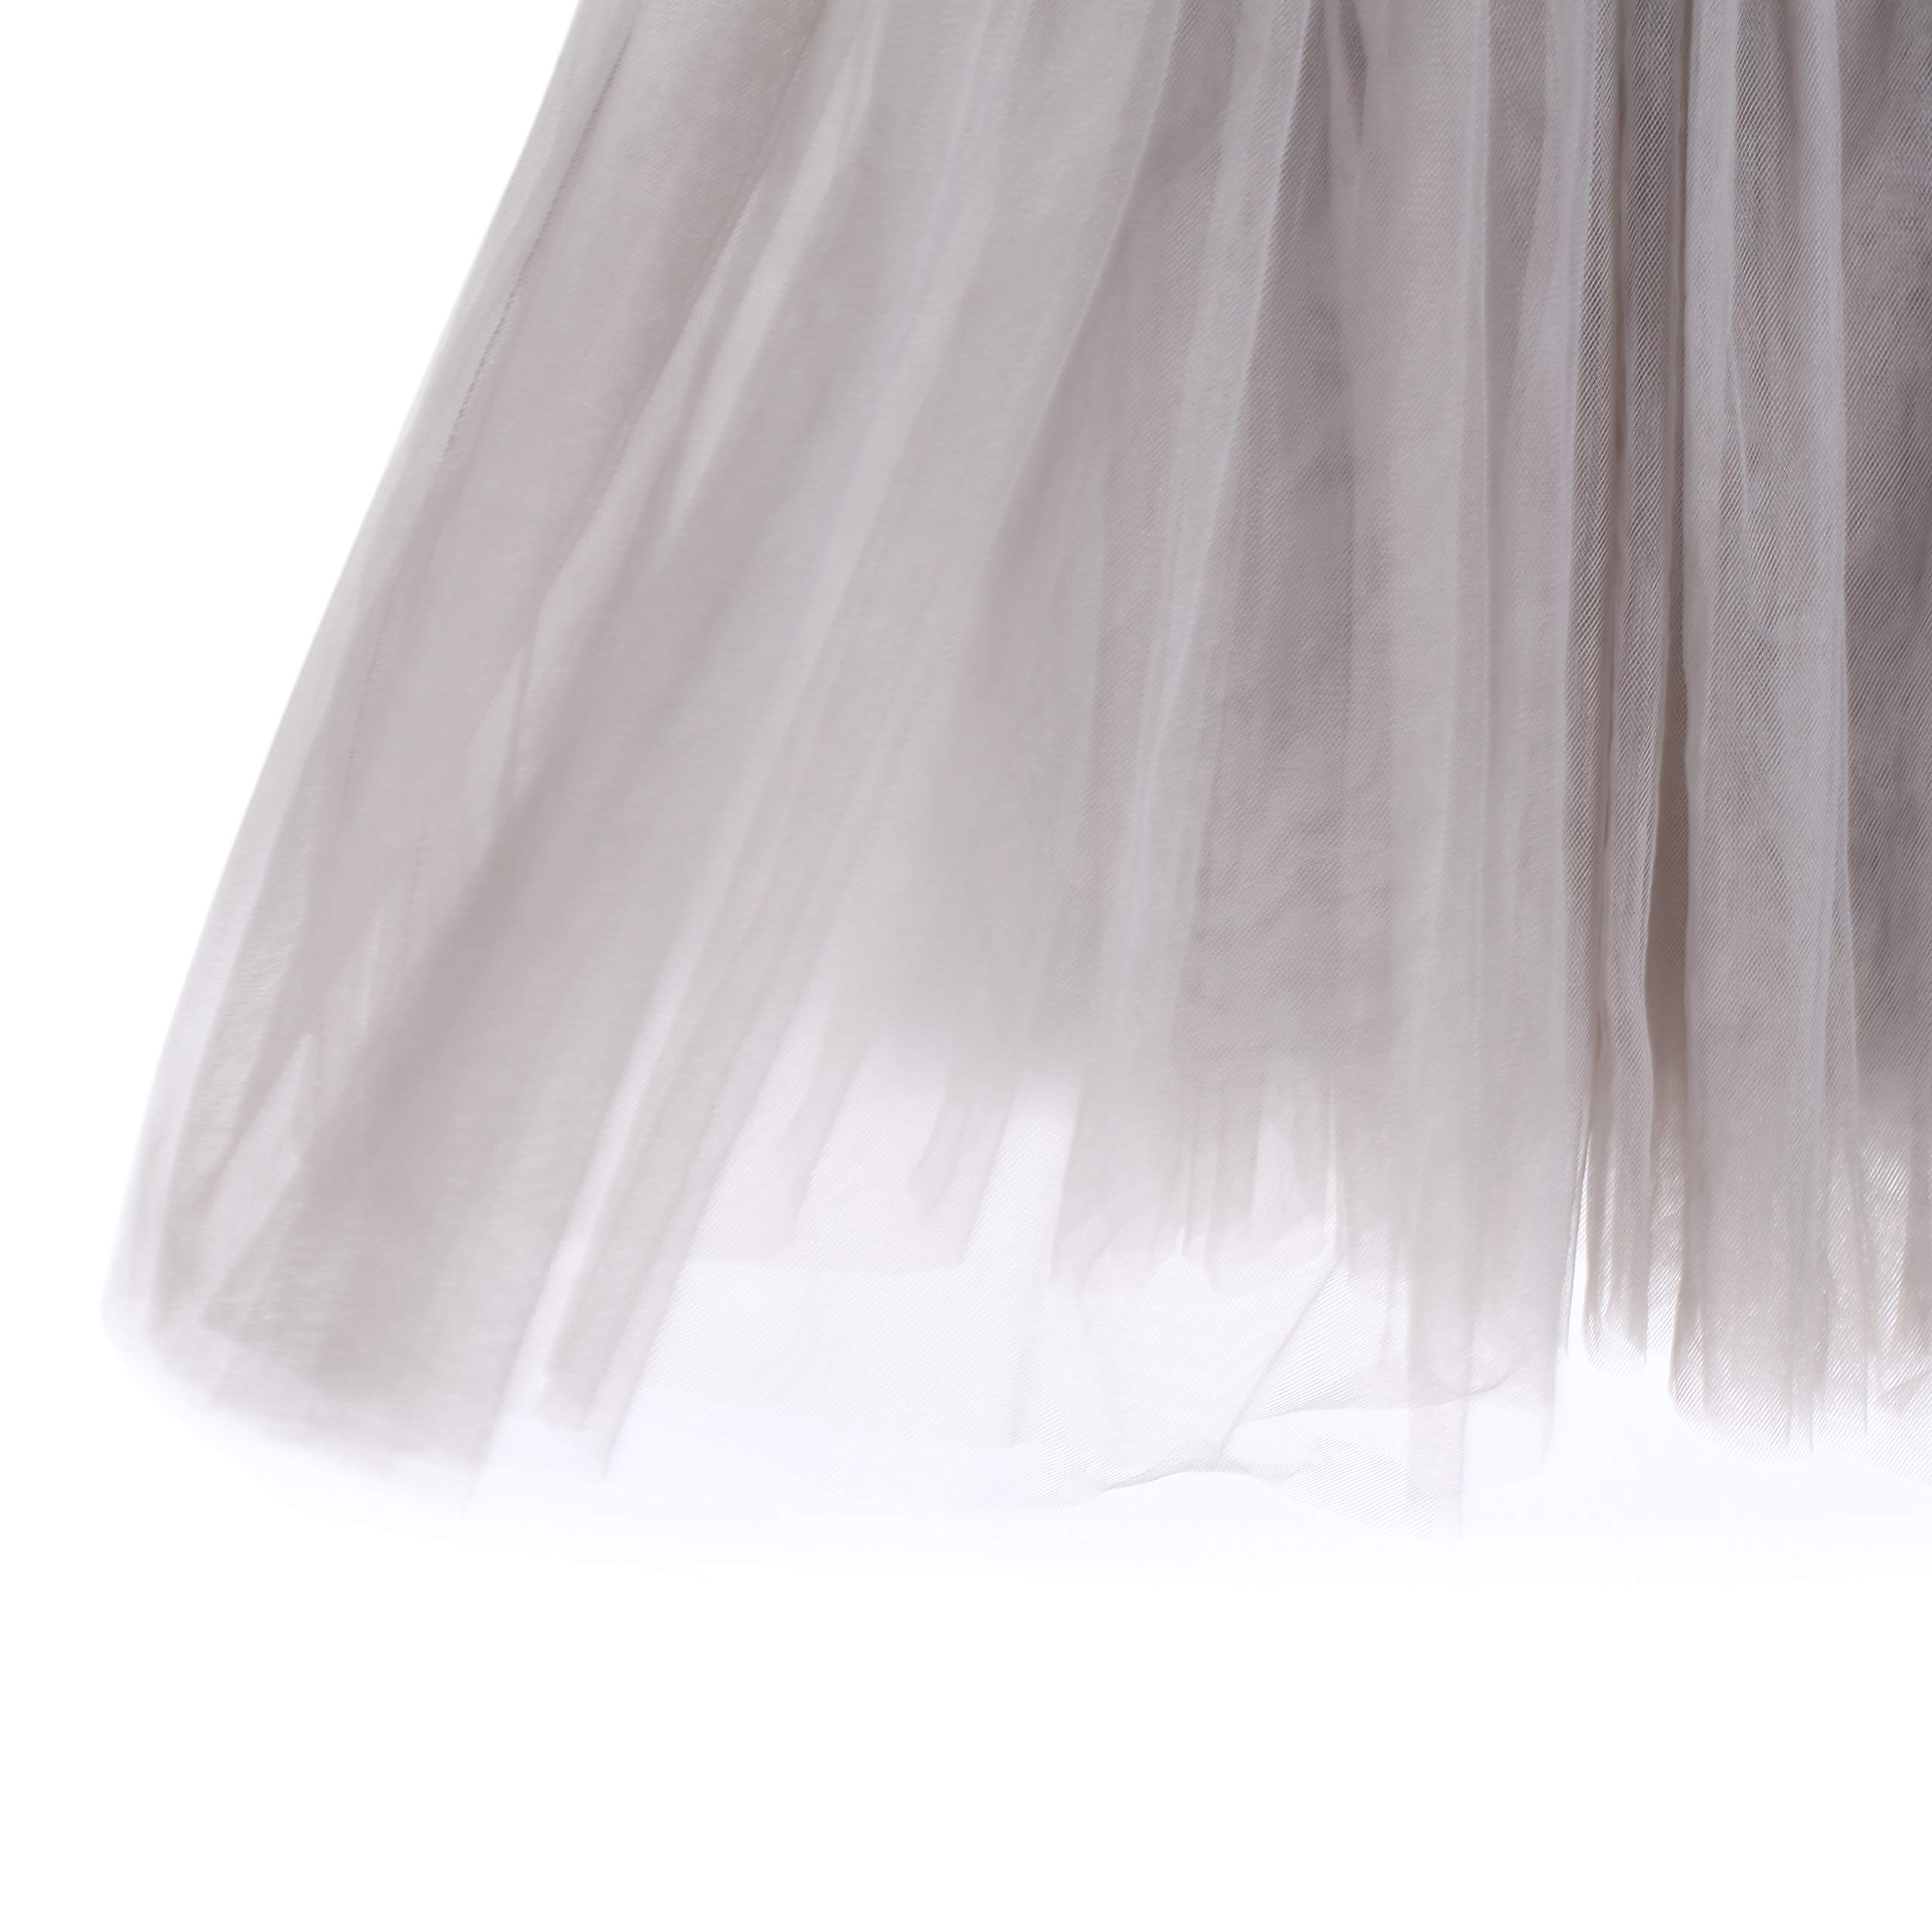 Flofallzique Tulle Tutu Girls Skirts for 1-12 Years Old Dancing Party Toddler Clothes(6, Gray) by Flofallzique (Image #6)